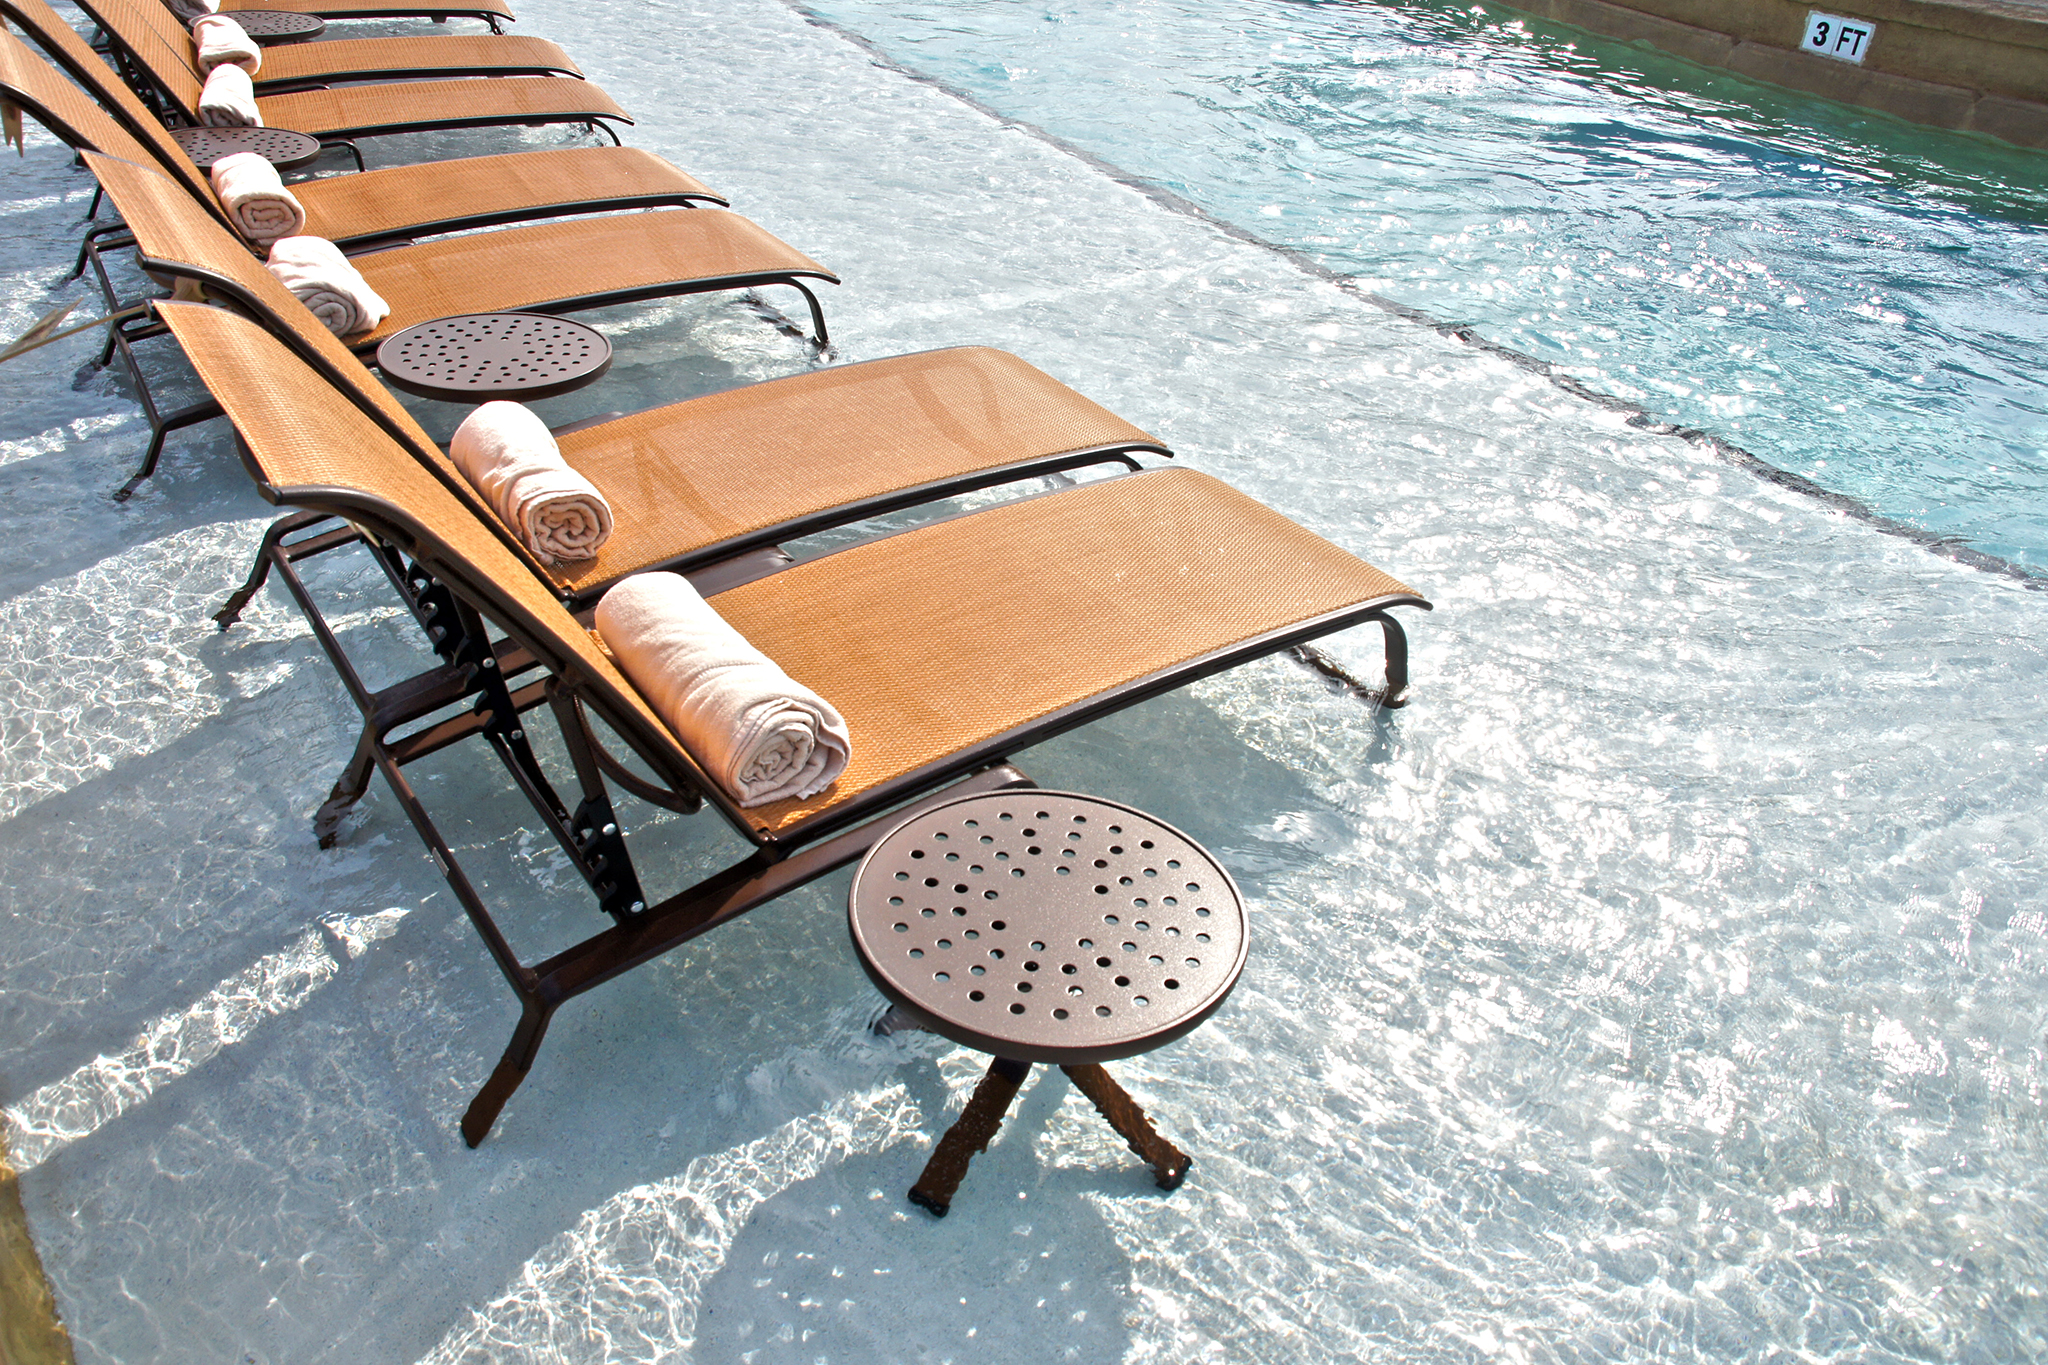 Lounge Chairs in pool